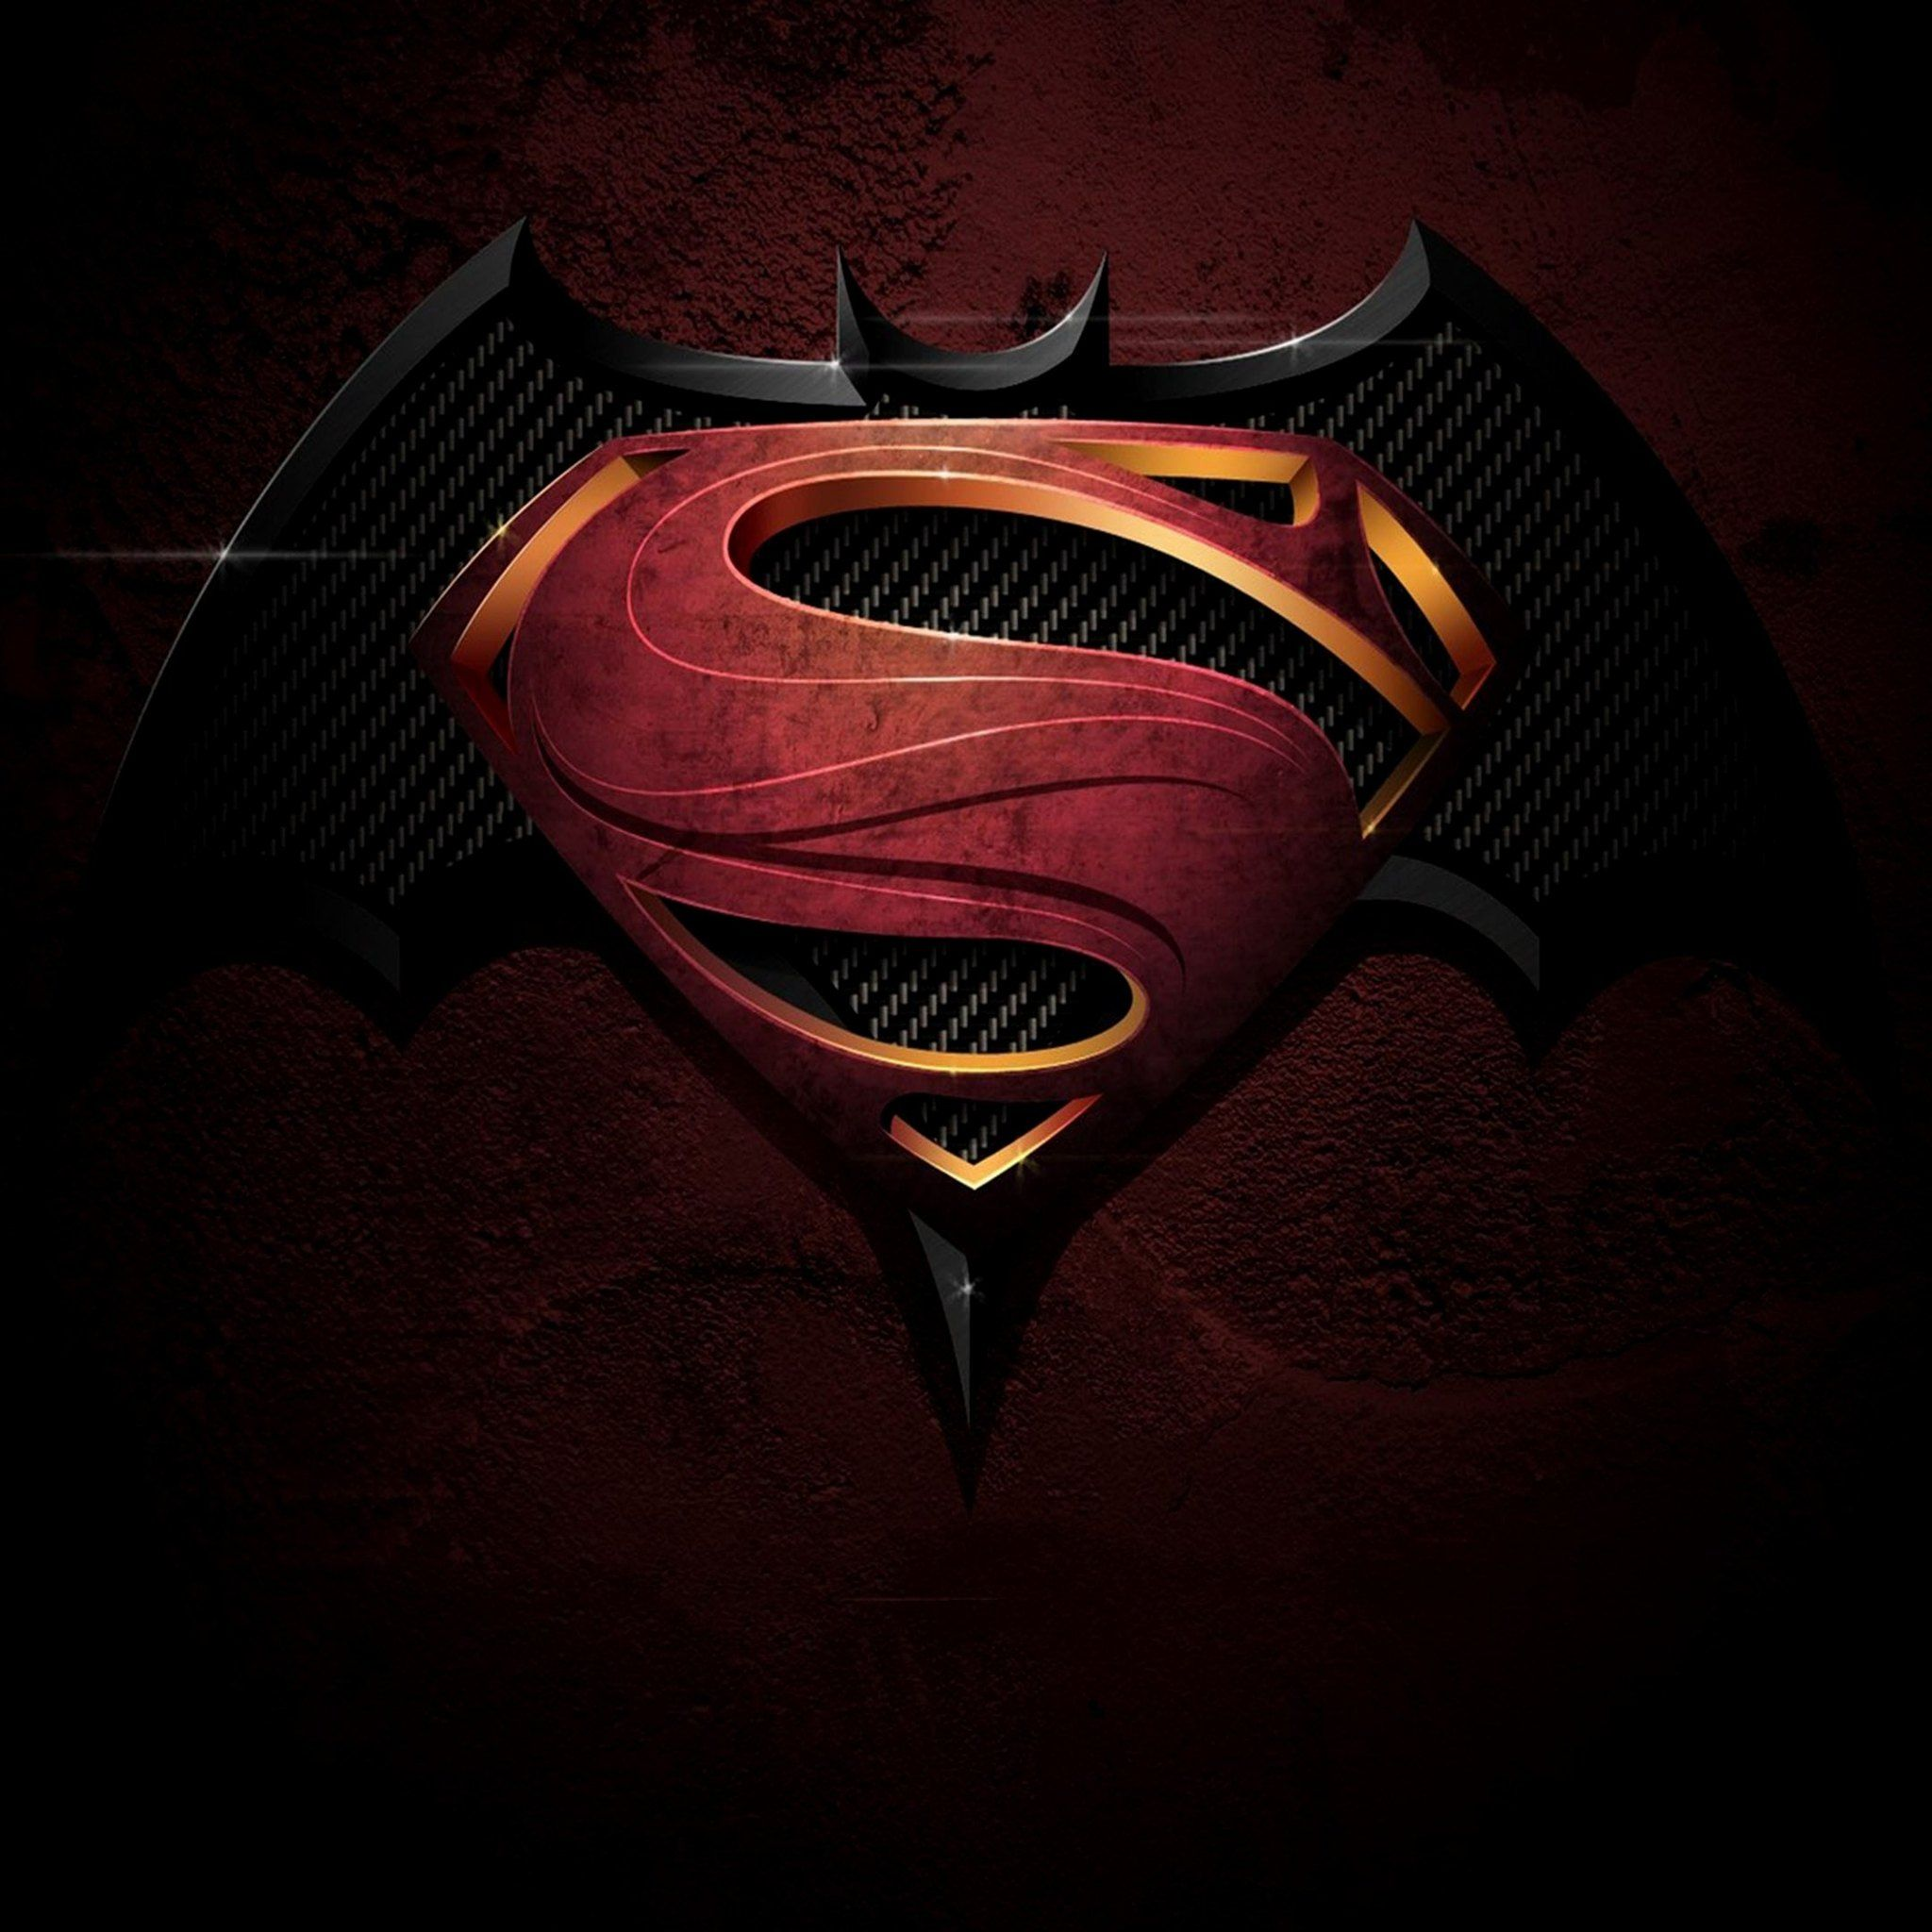 batman v superman tap to check out the coolest batman vs superman wallpapers collection for